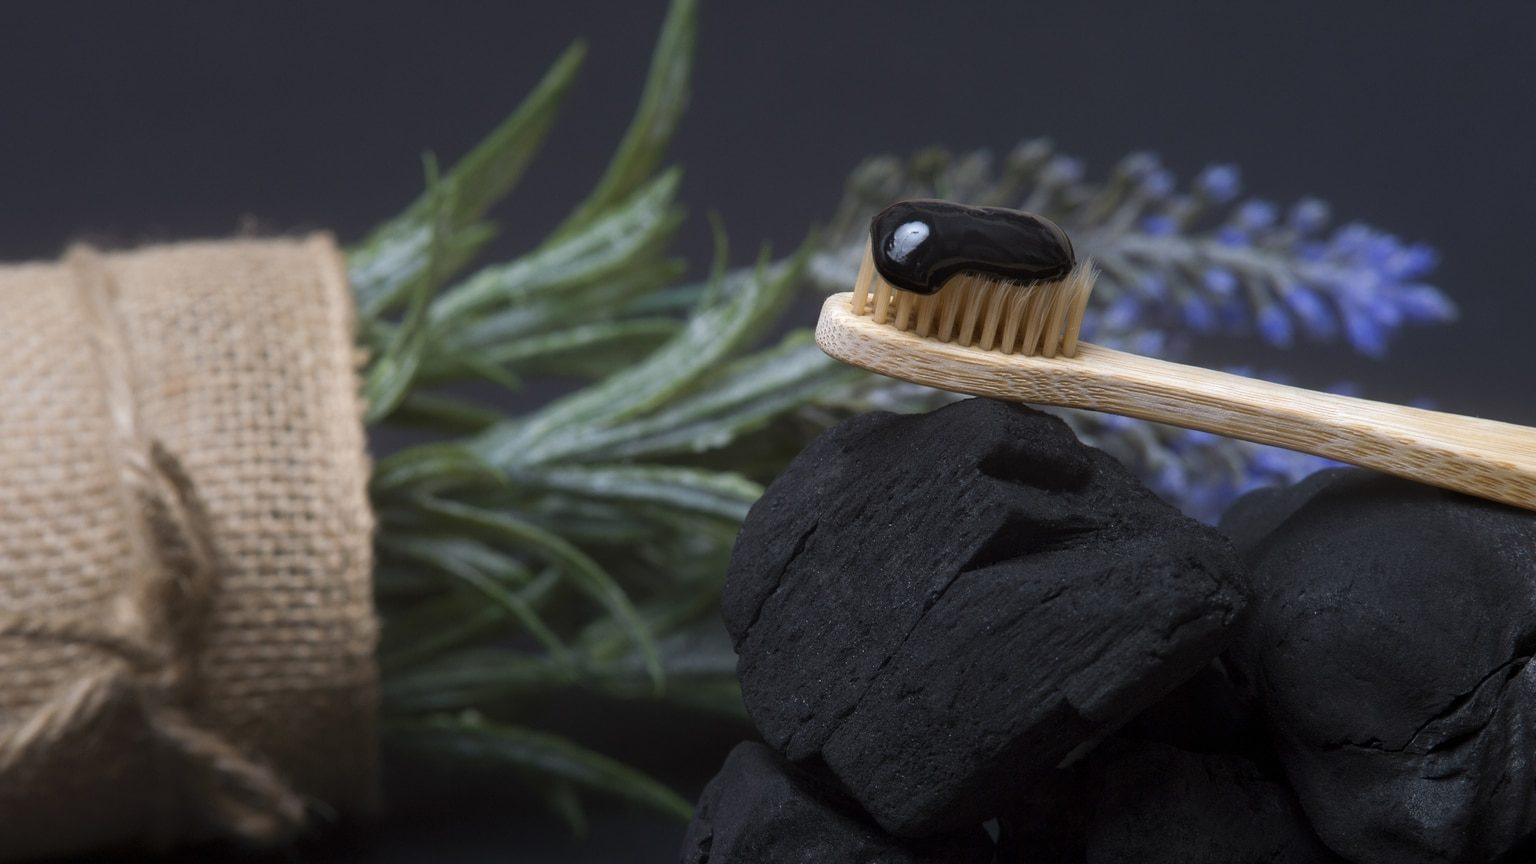 Activated charcoal toothpaste on coal briquettes with natural plant background